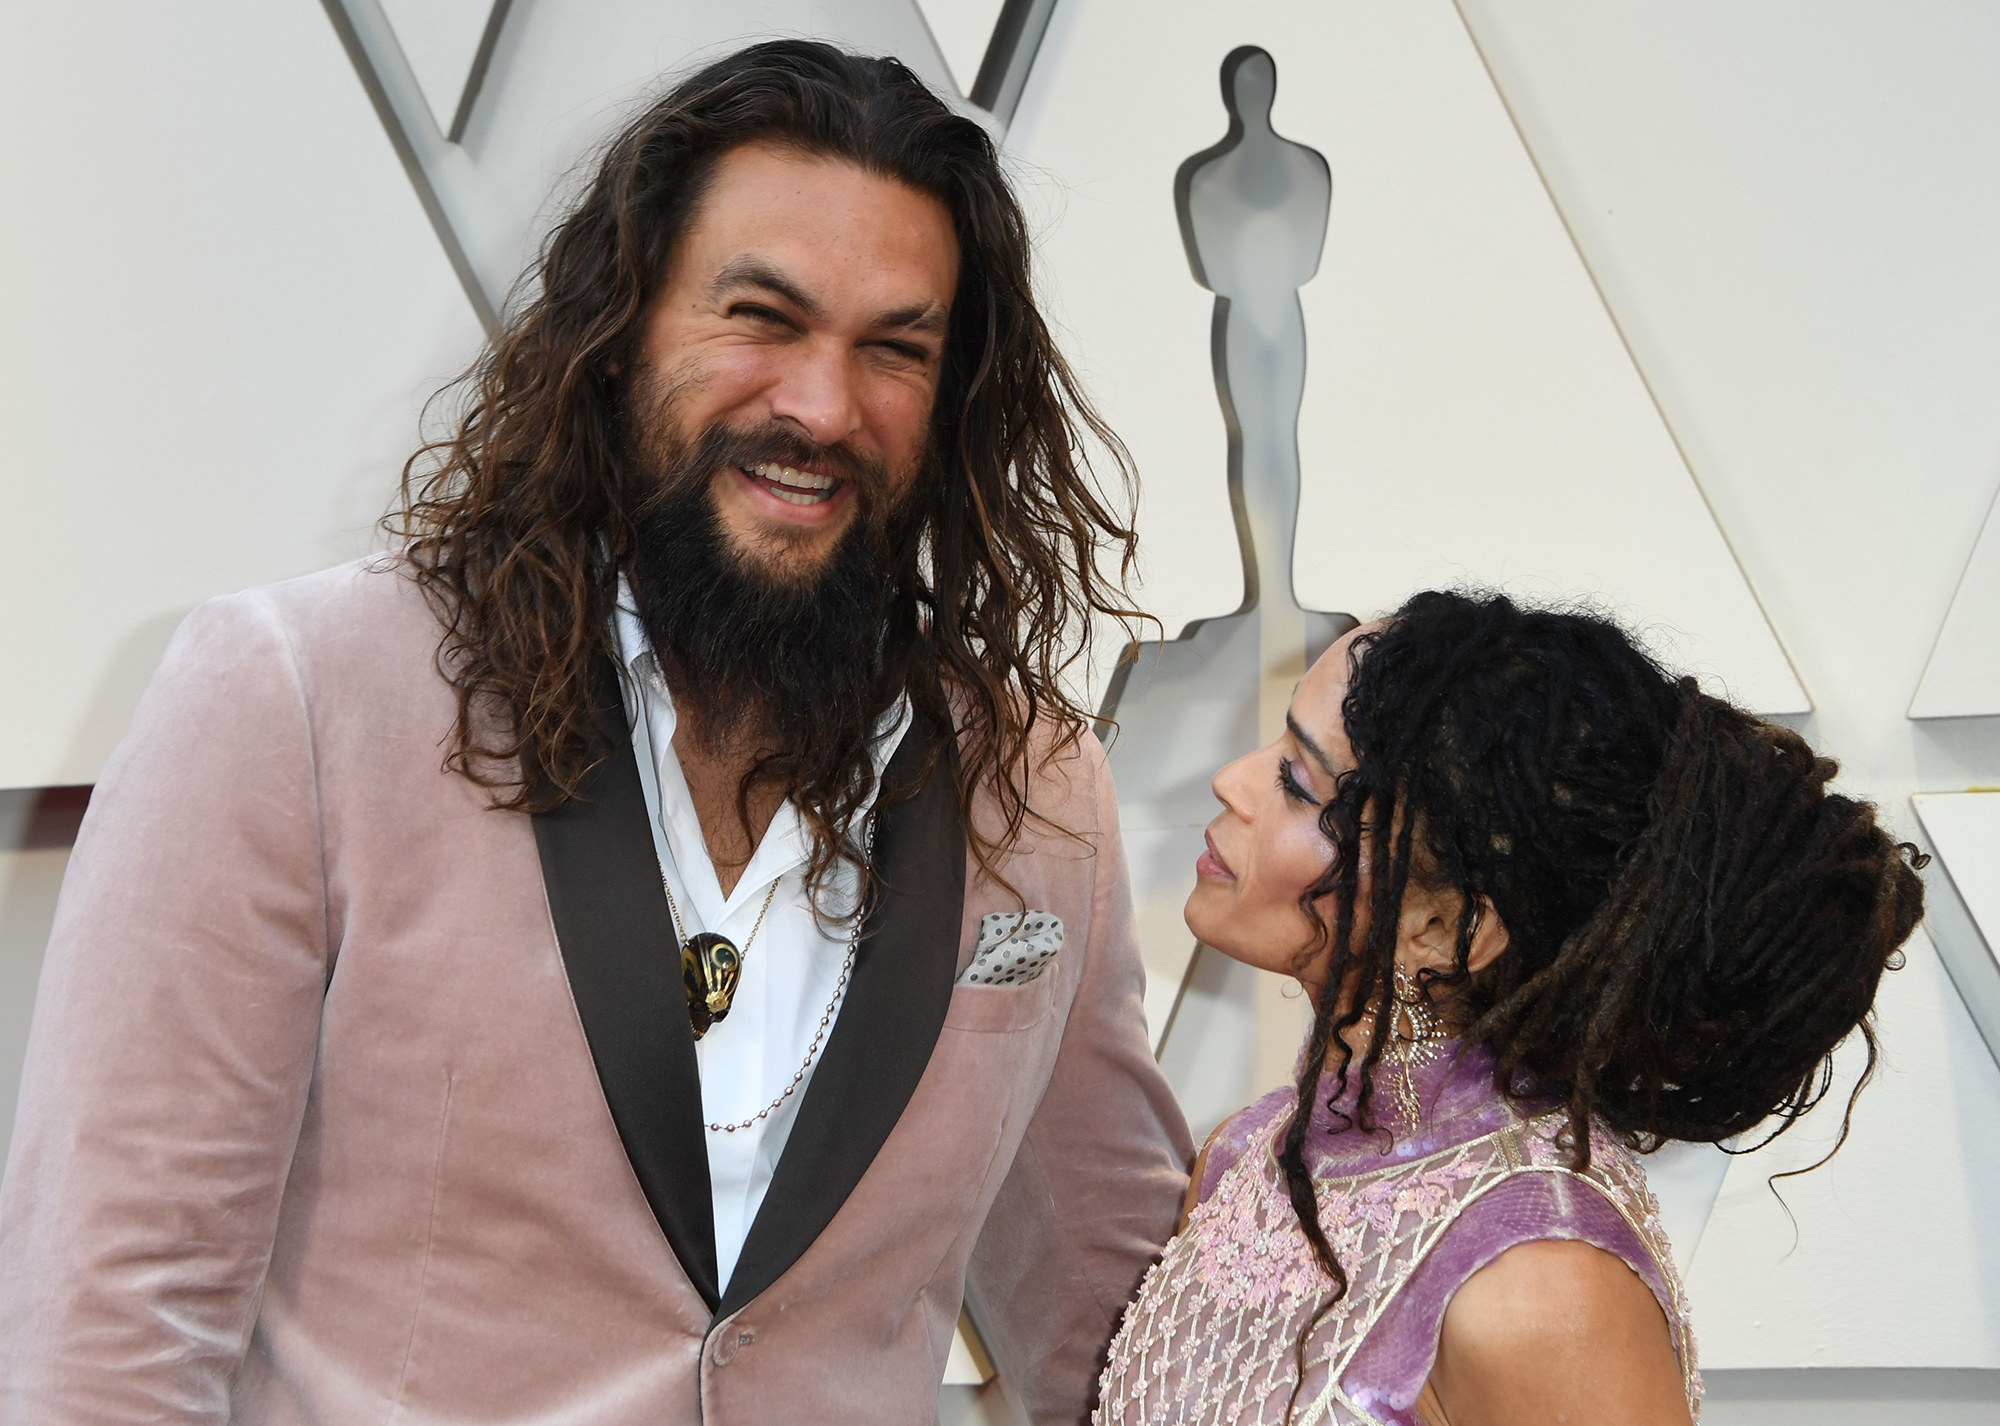 Oscars 2019: Jason Momoa, Lisa Bonet Match in Pink on Red Carpet